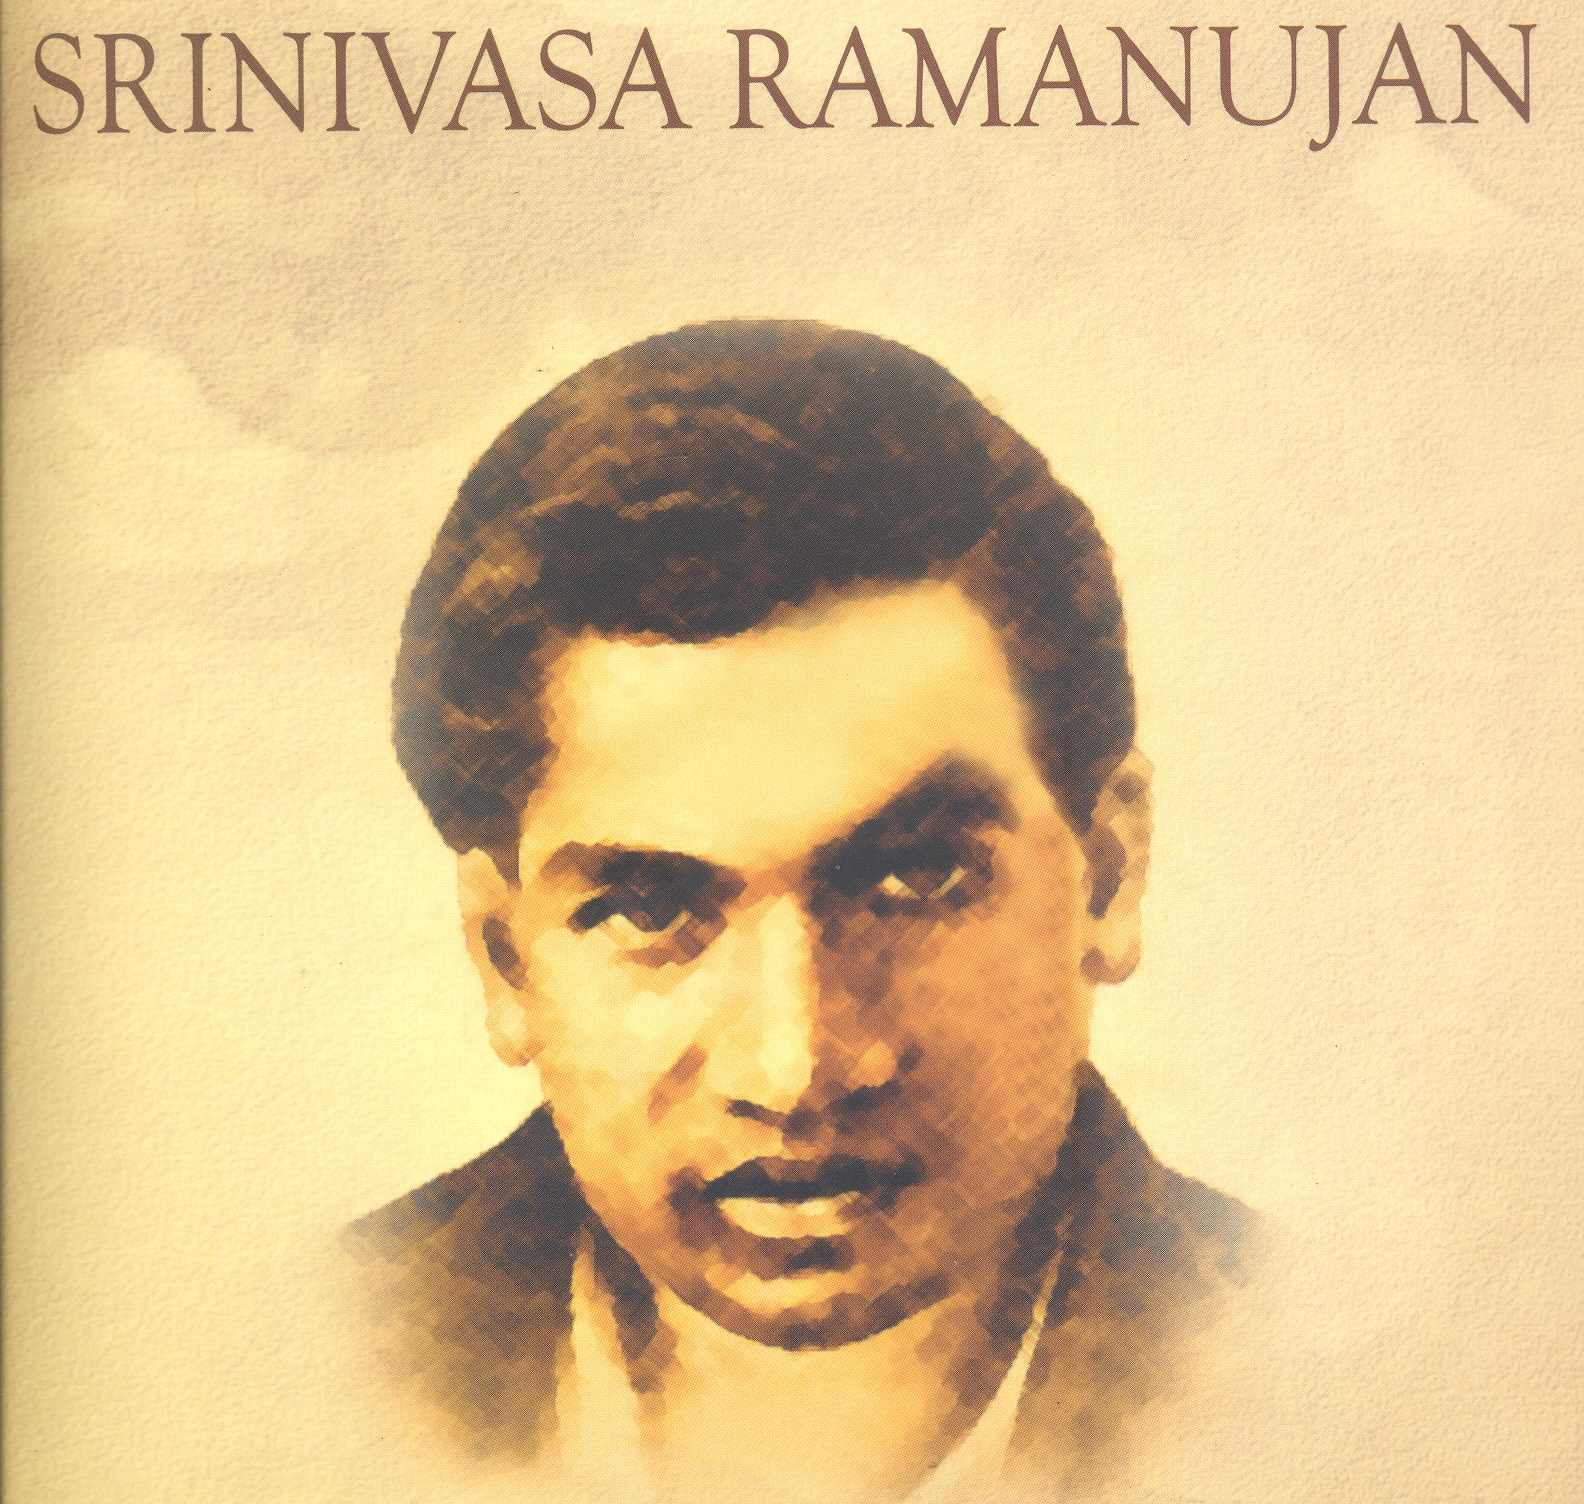 college essays college application essays essay on srinivasa college essay short essay on srinivasa ramanujan